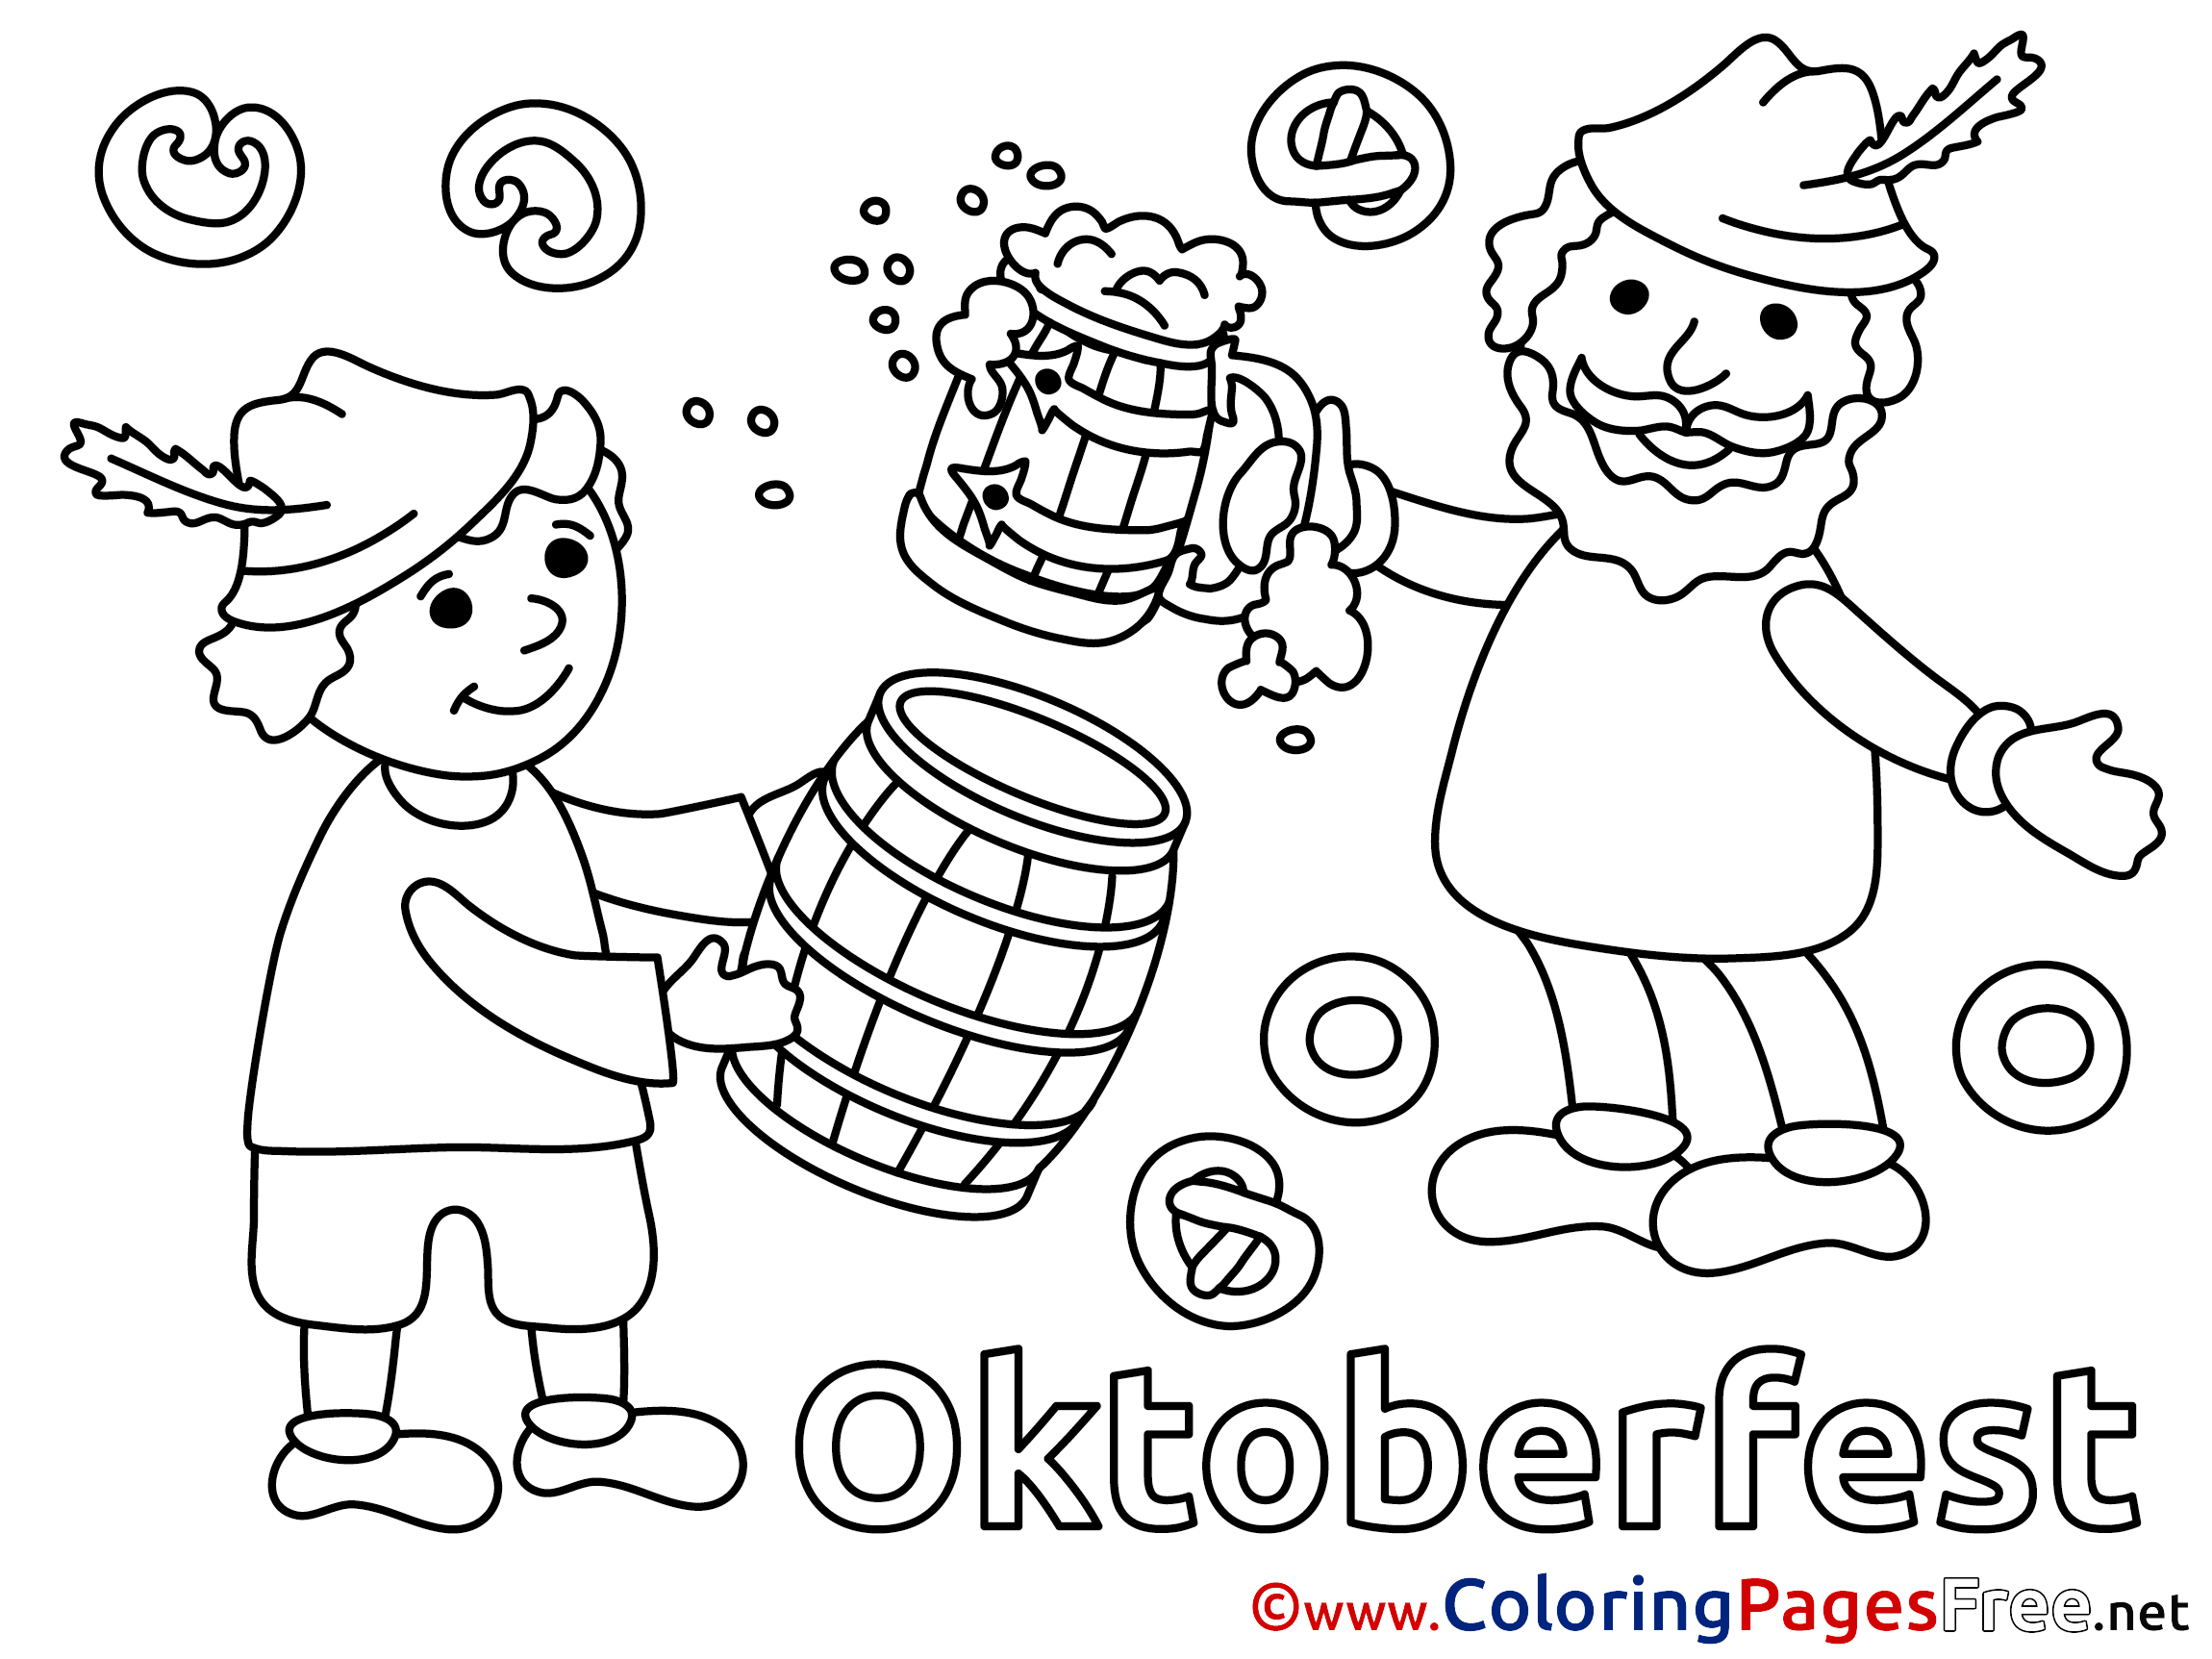 Beer Oktoberfest printable Coloring Pages for free